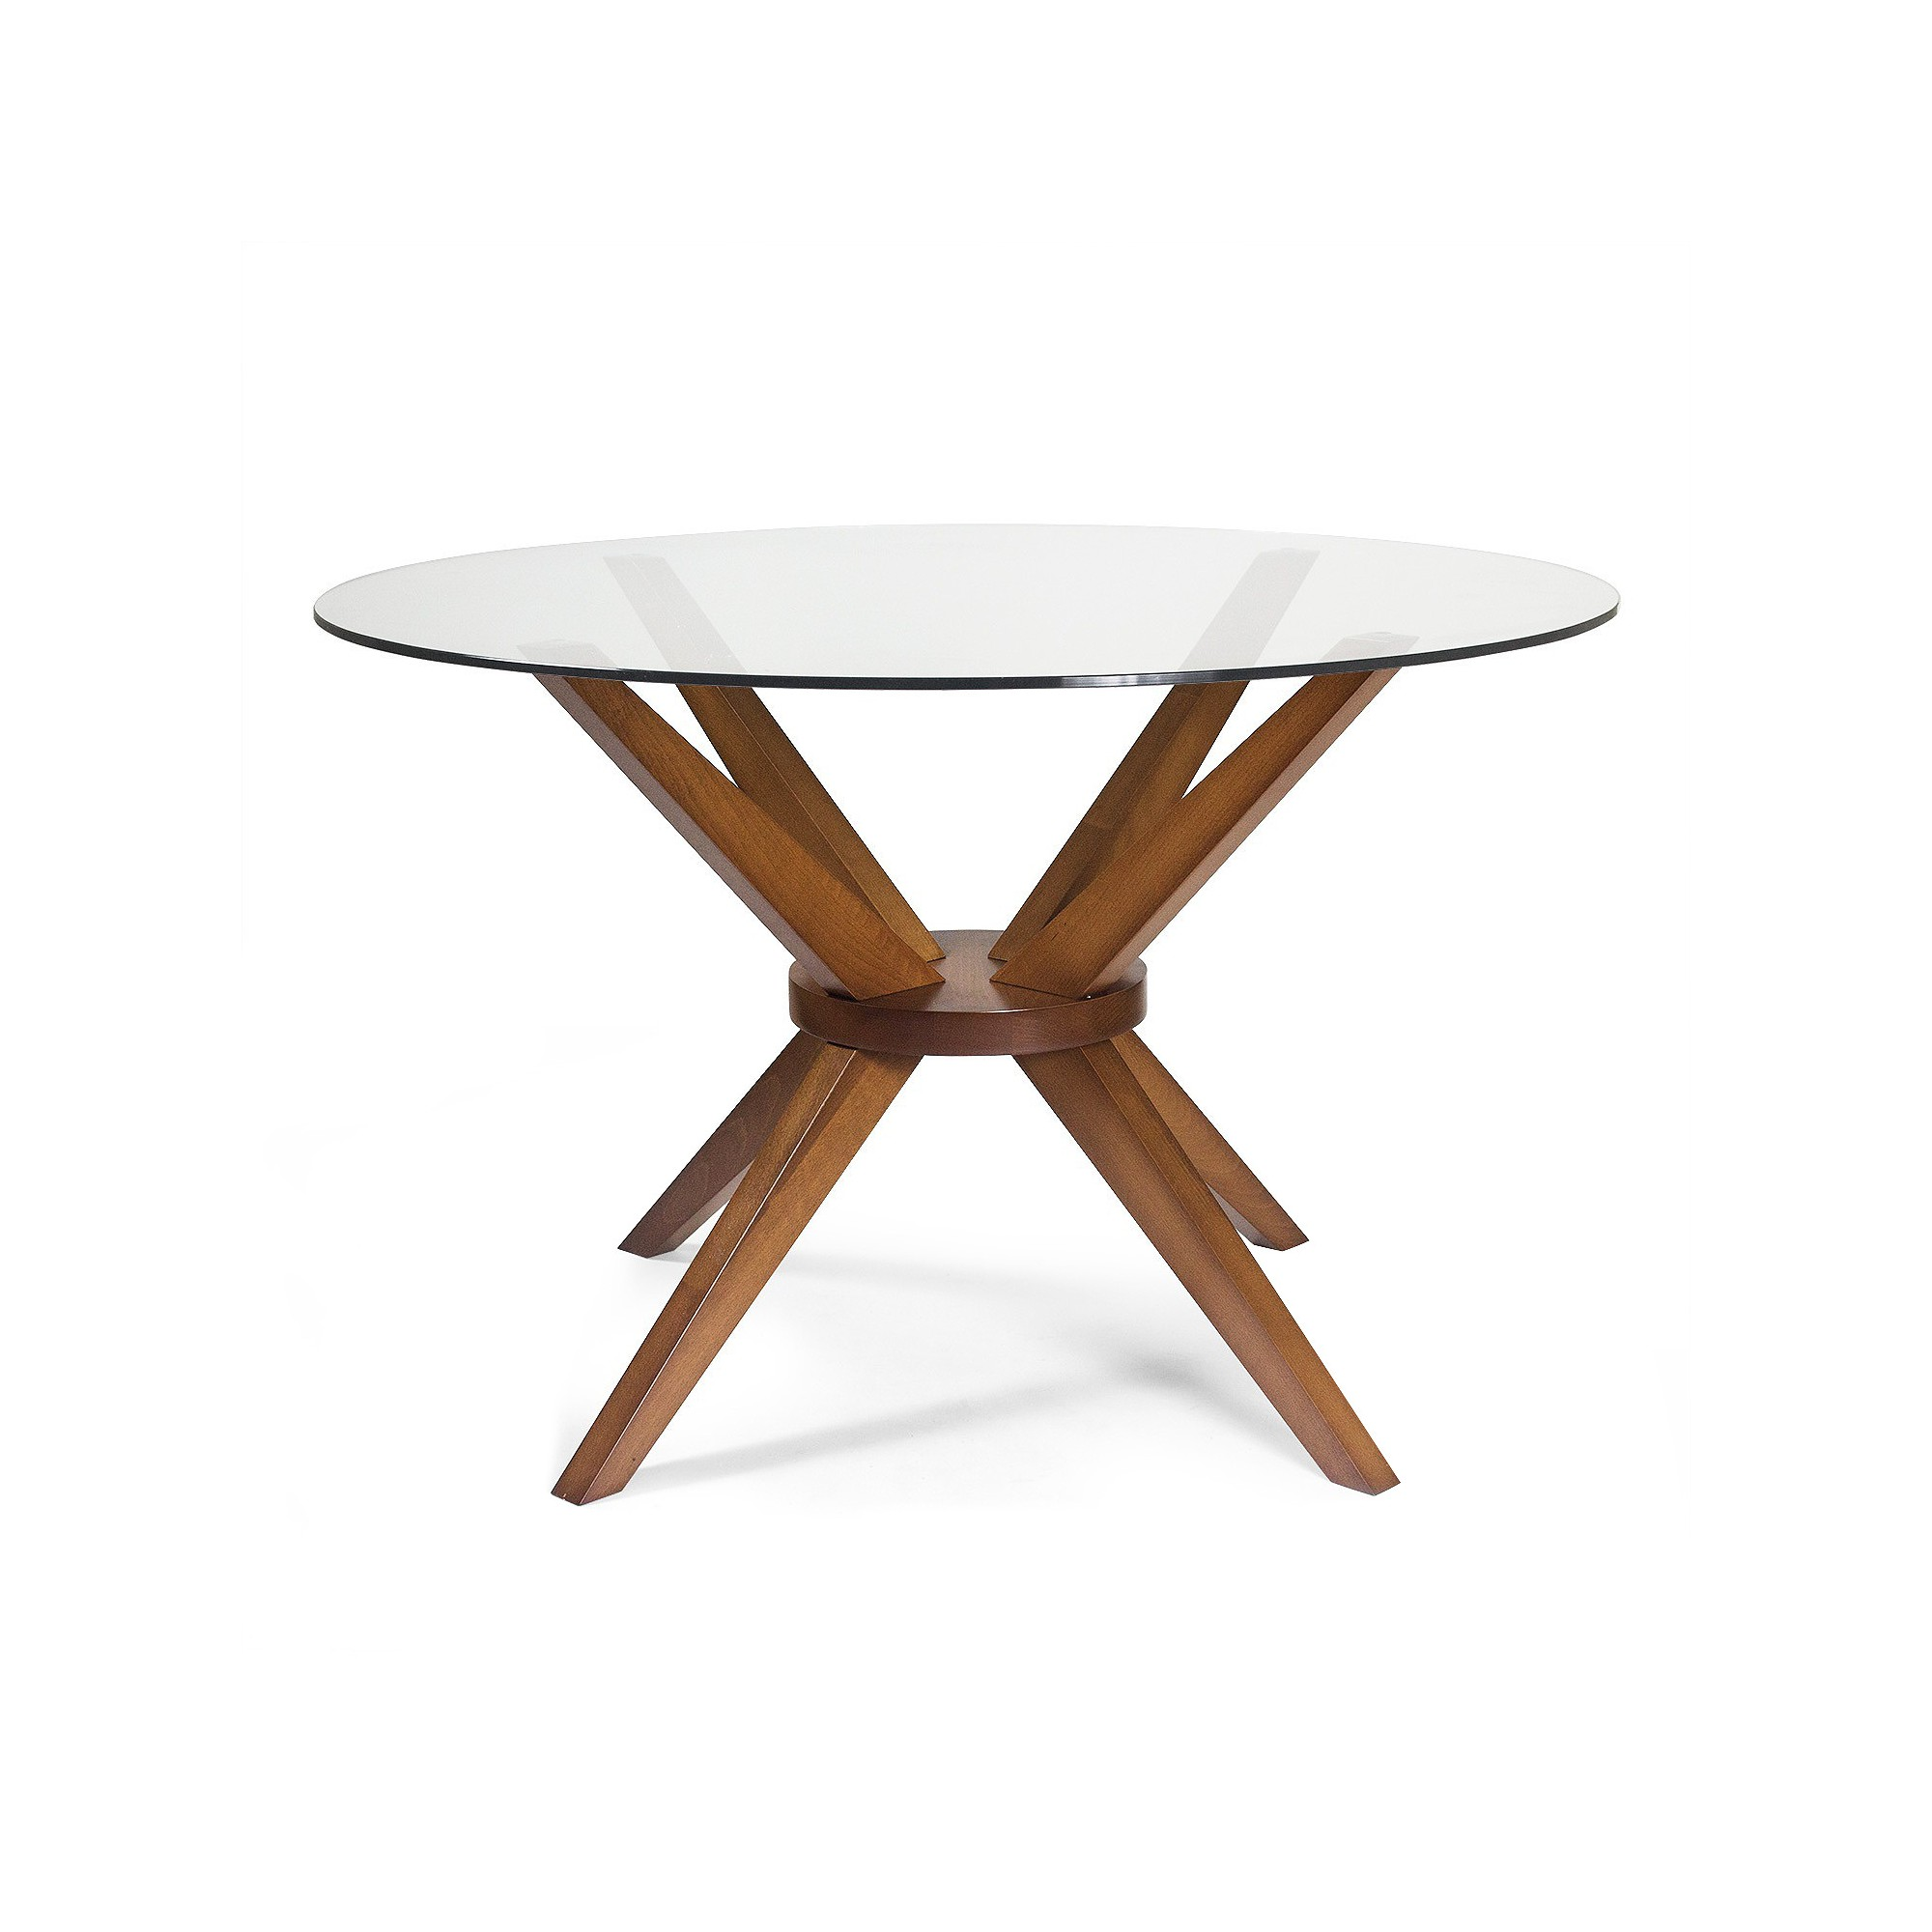 Bianca Round Dining Table with Glass Top - Walnut (Brown) - Aeon